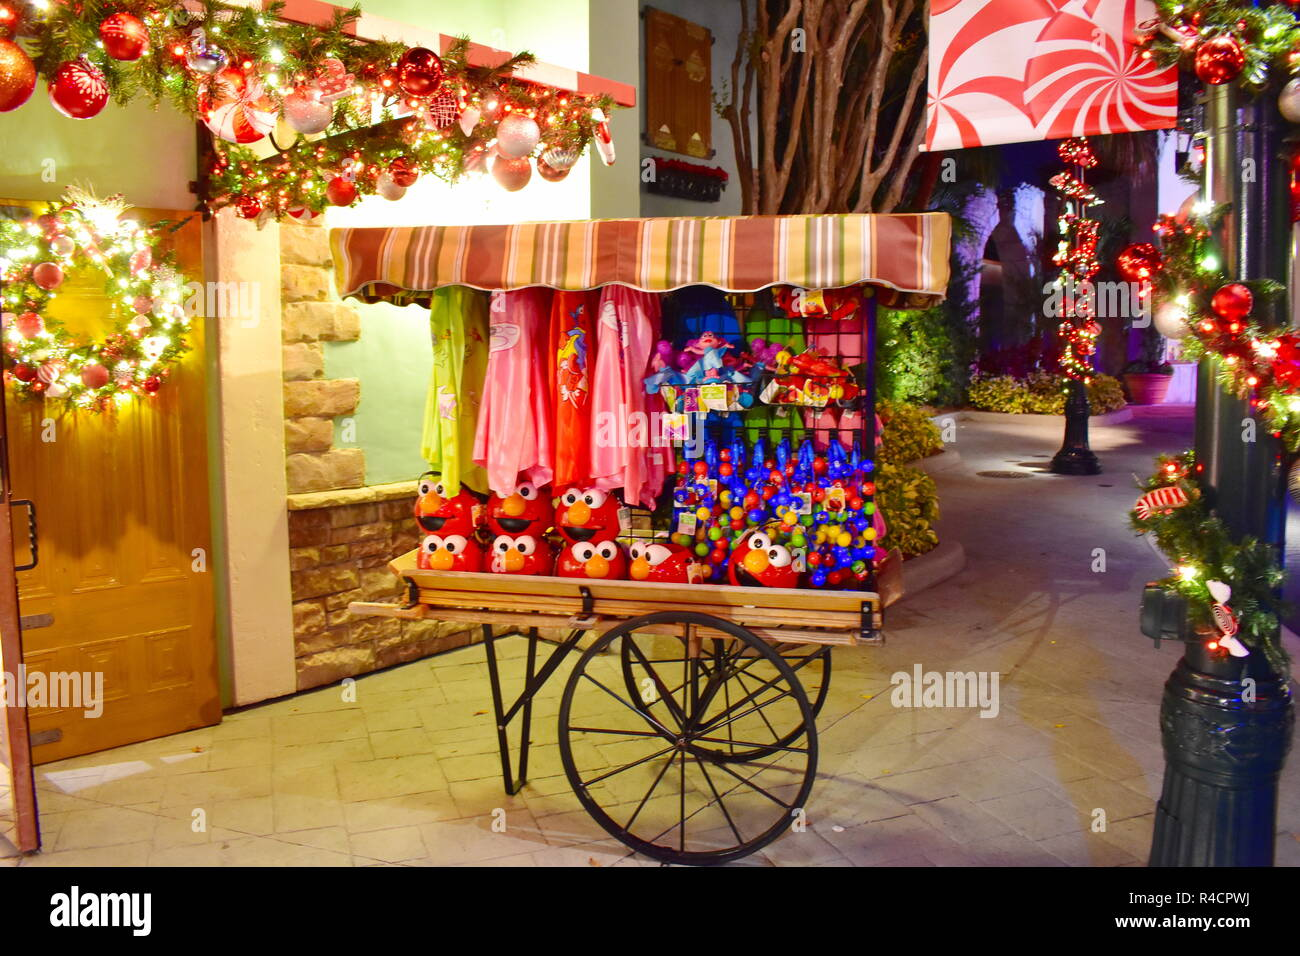 Orlando, Florida. November 19, 2018. European Style Car on Christmas Market background  in International Drive area. Stock Photo